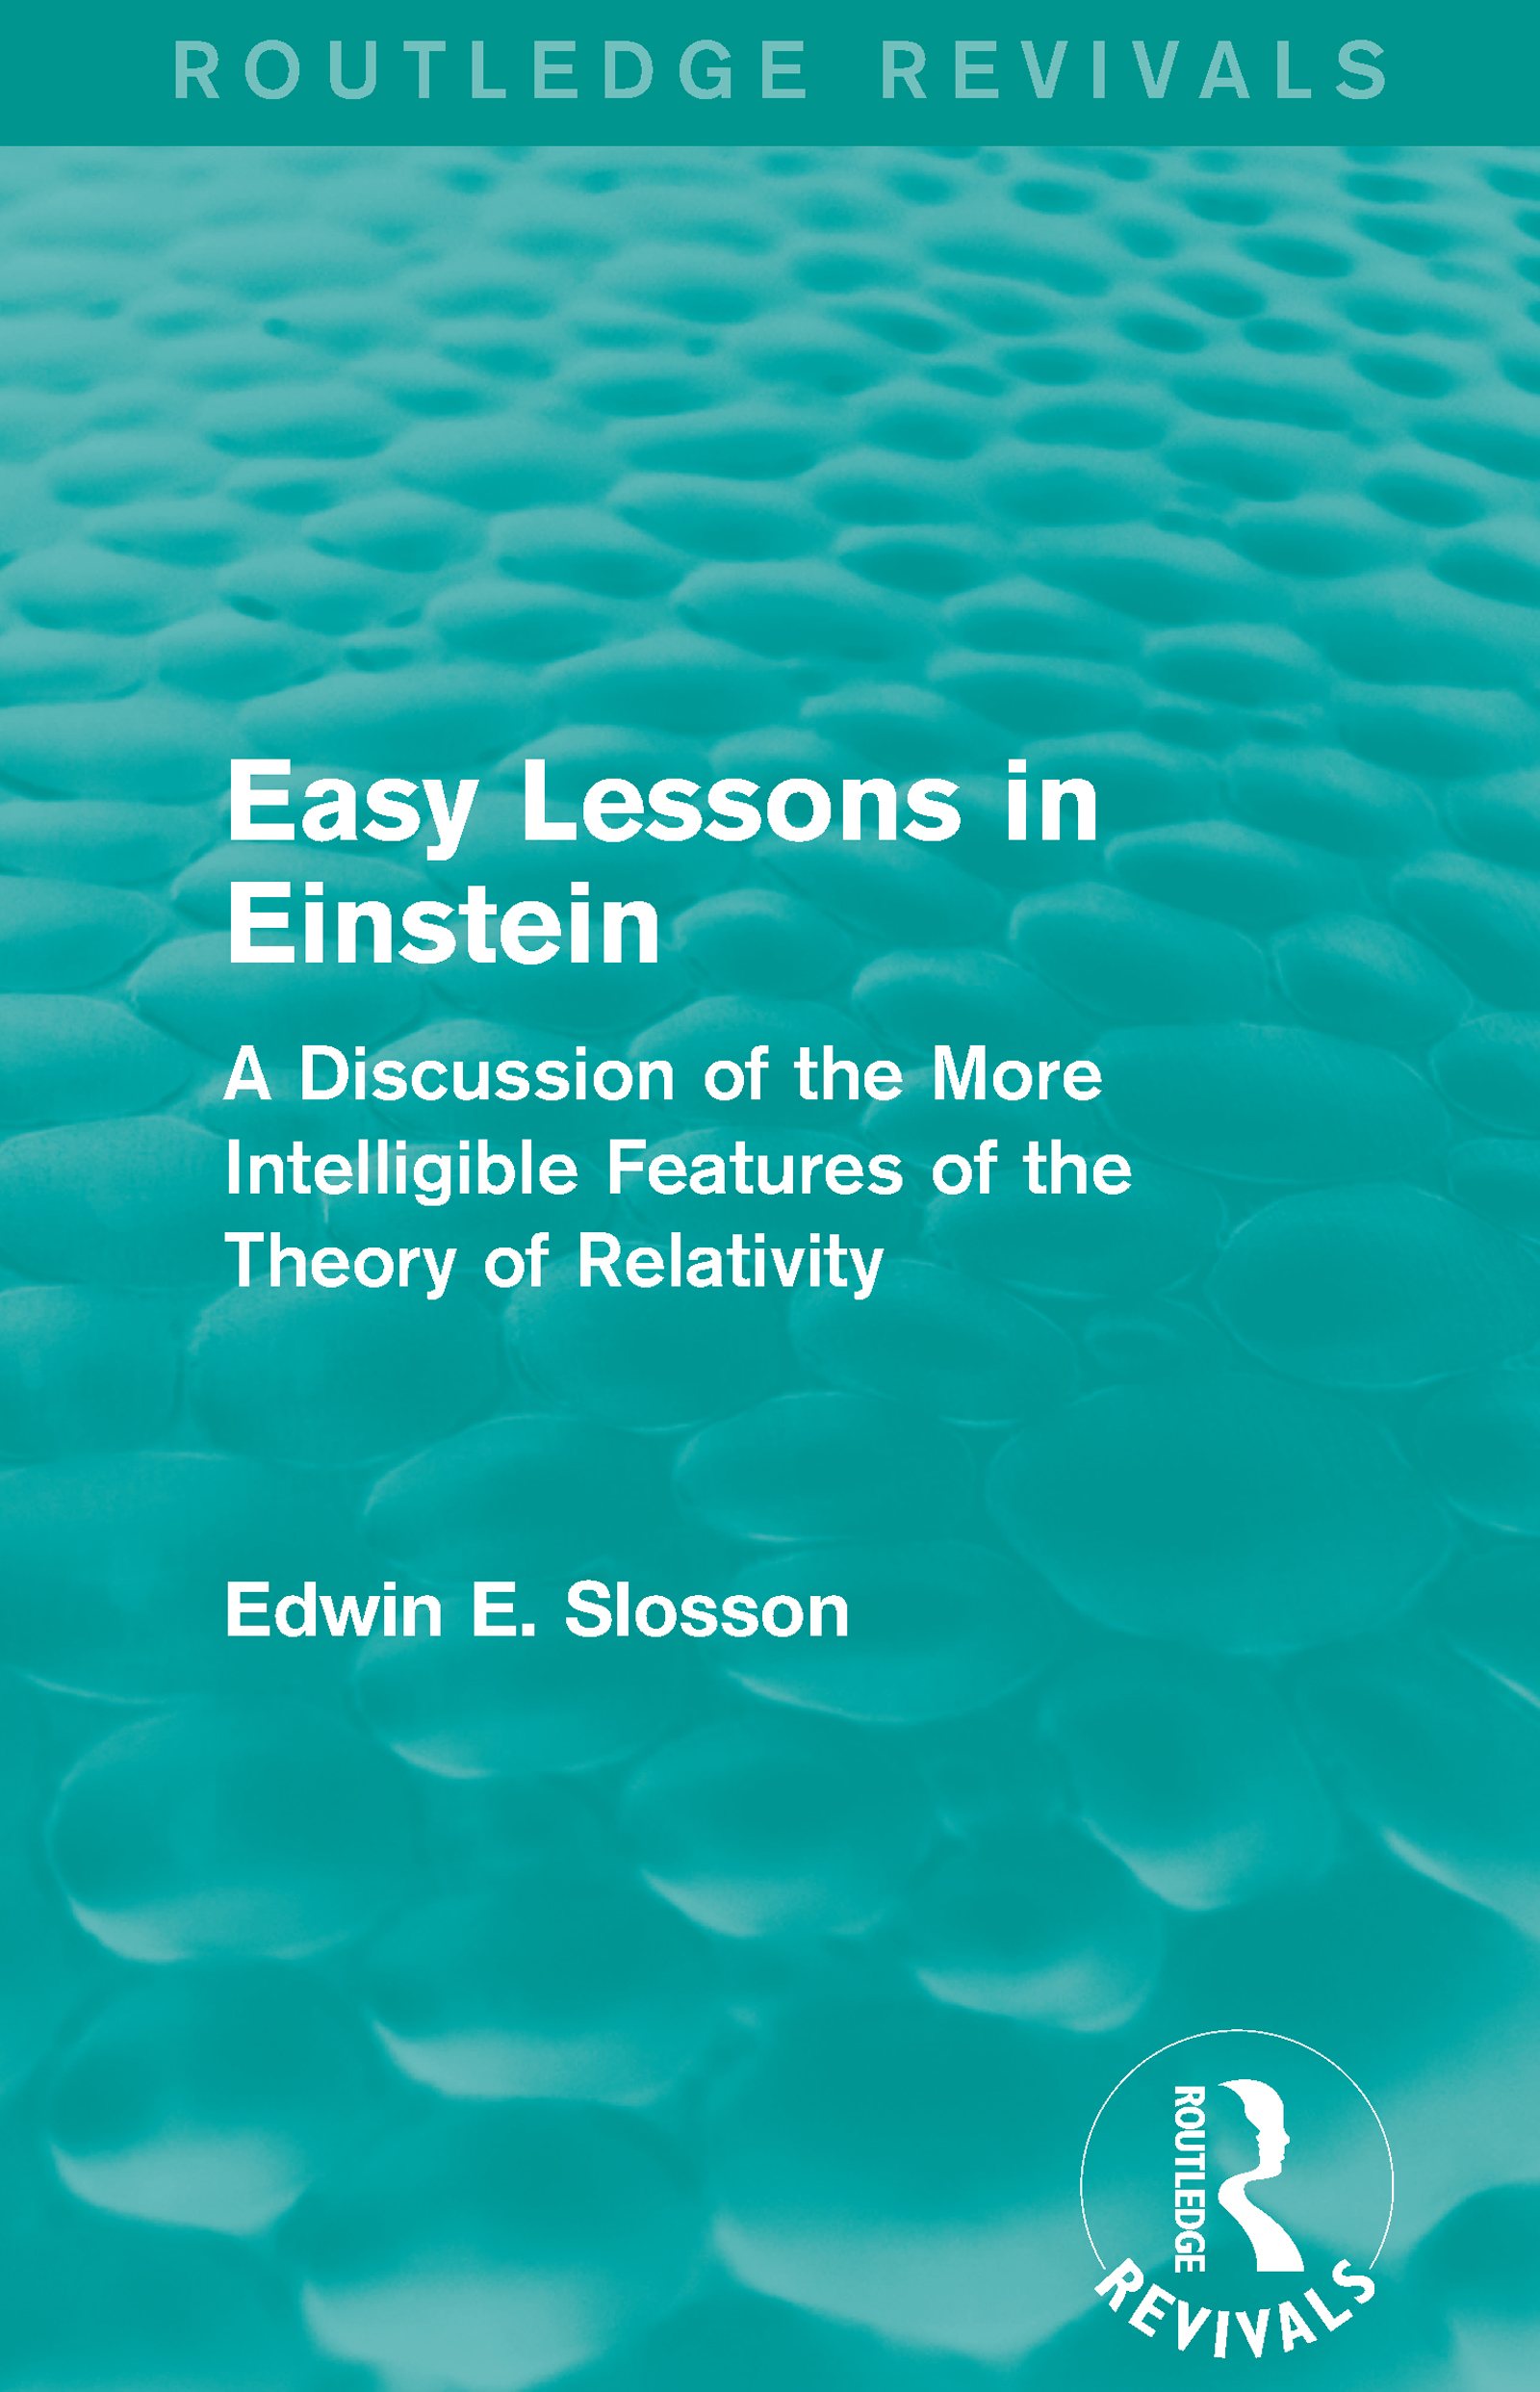 Routledge Revivals: Easy Lessons in Einstein (1922): A Discussion of the More Intelligible Features of the Theory of Relativity, 1st Edition (Paperback) book cover